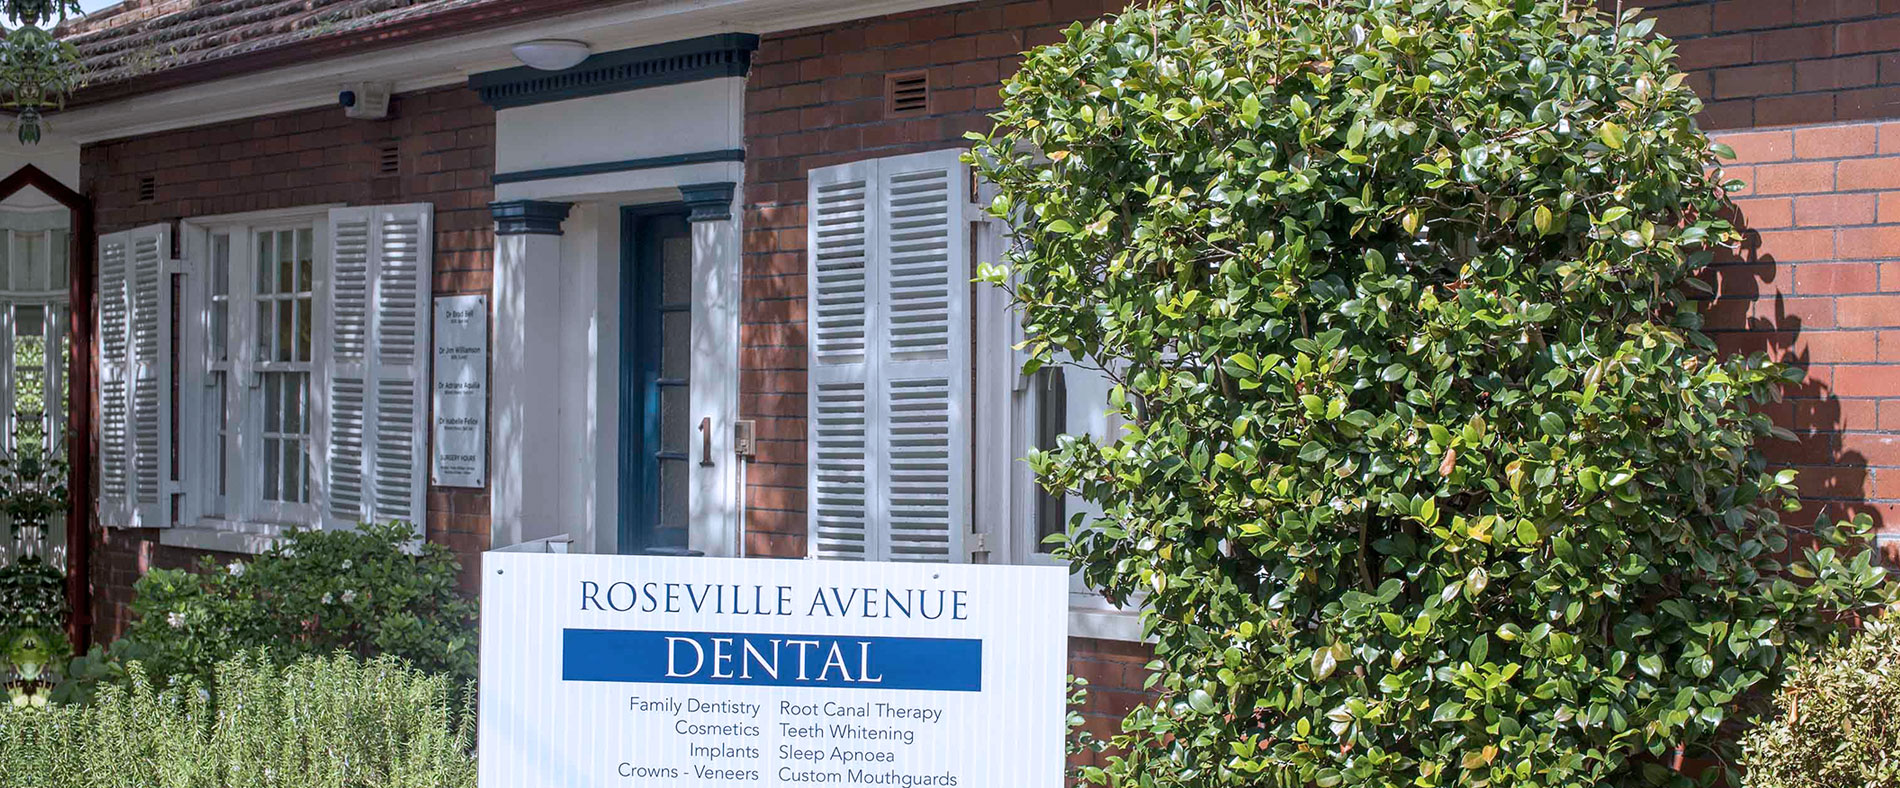 Welcome to Roseville Avenue Dental